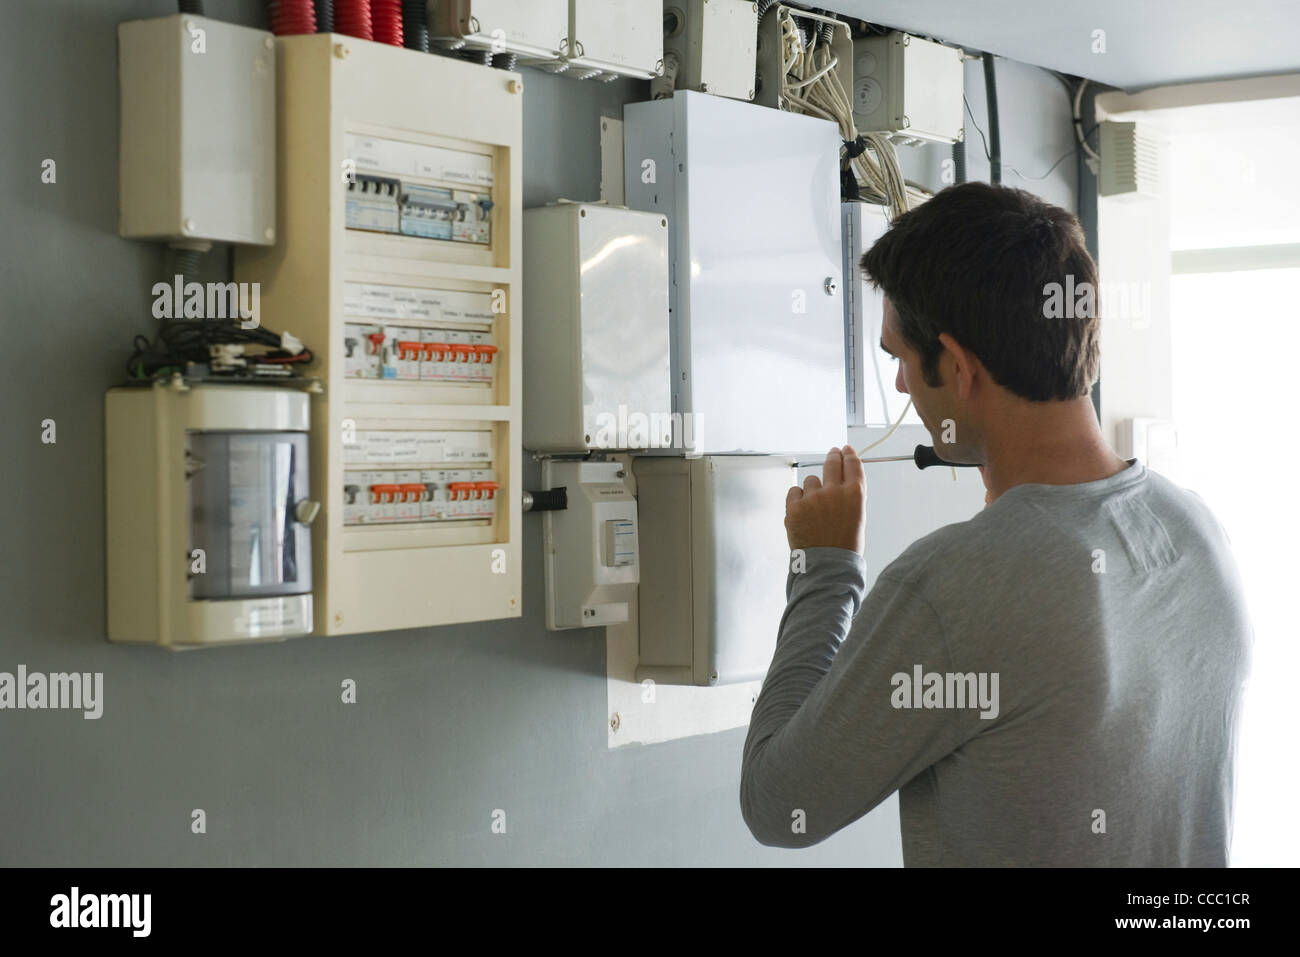 Domestic Fuse Box Stock Photos Images Alamy Ah Man Opening Rear View Image